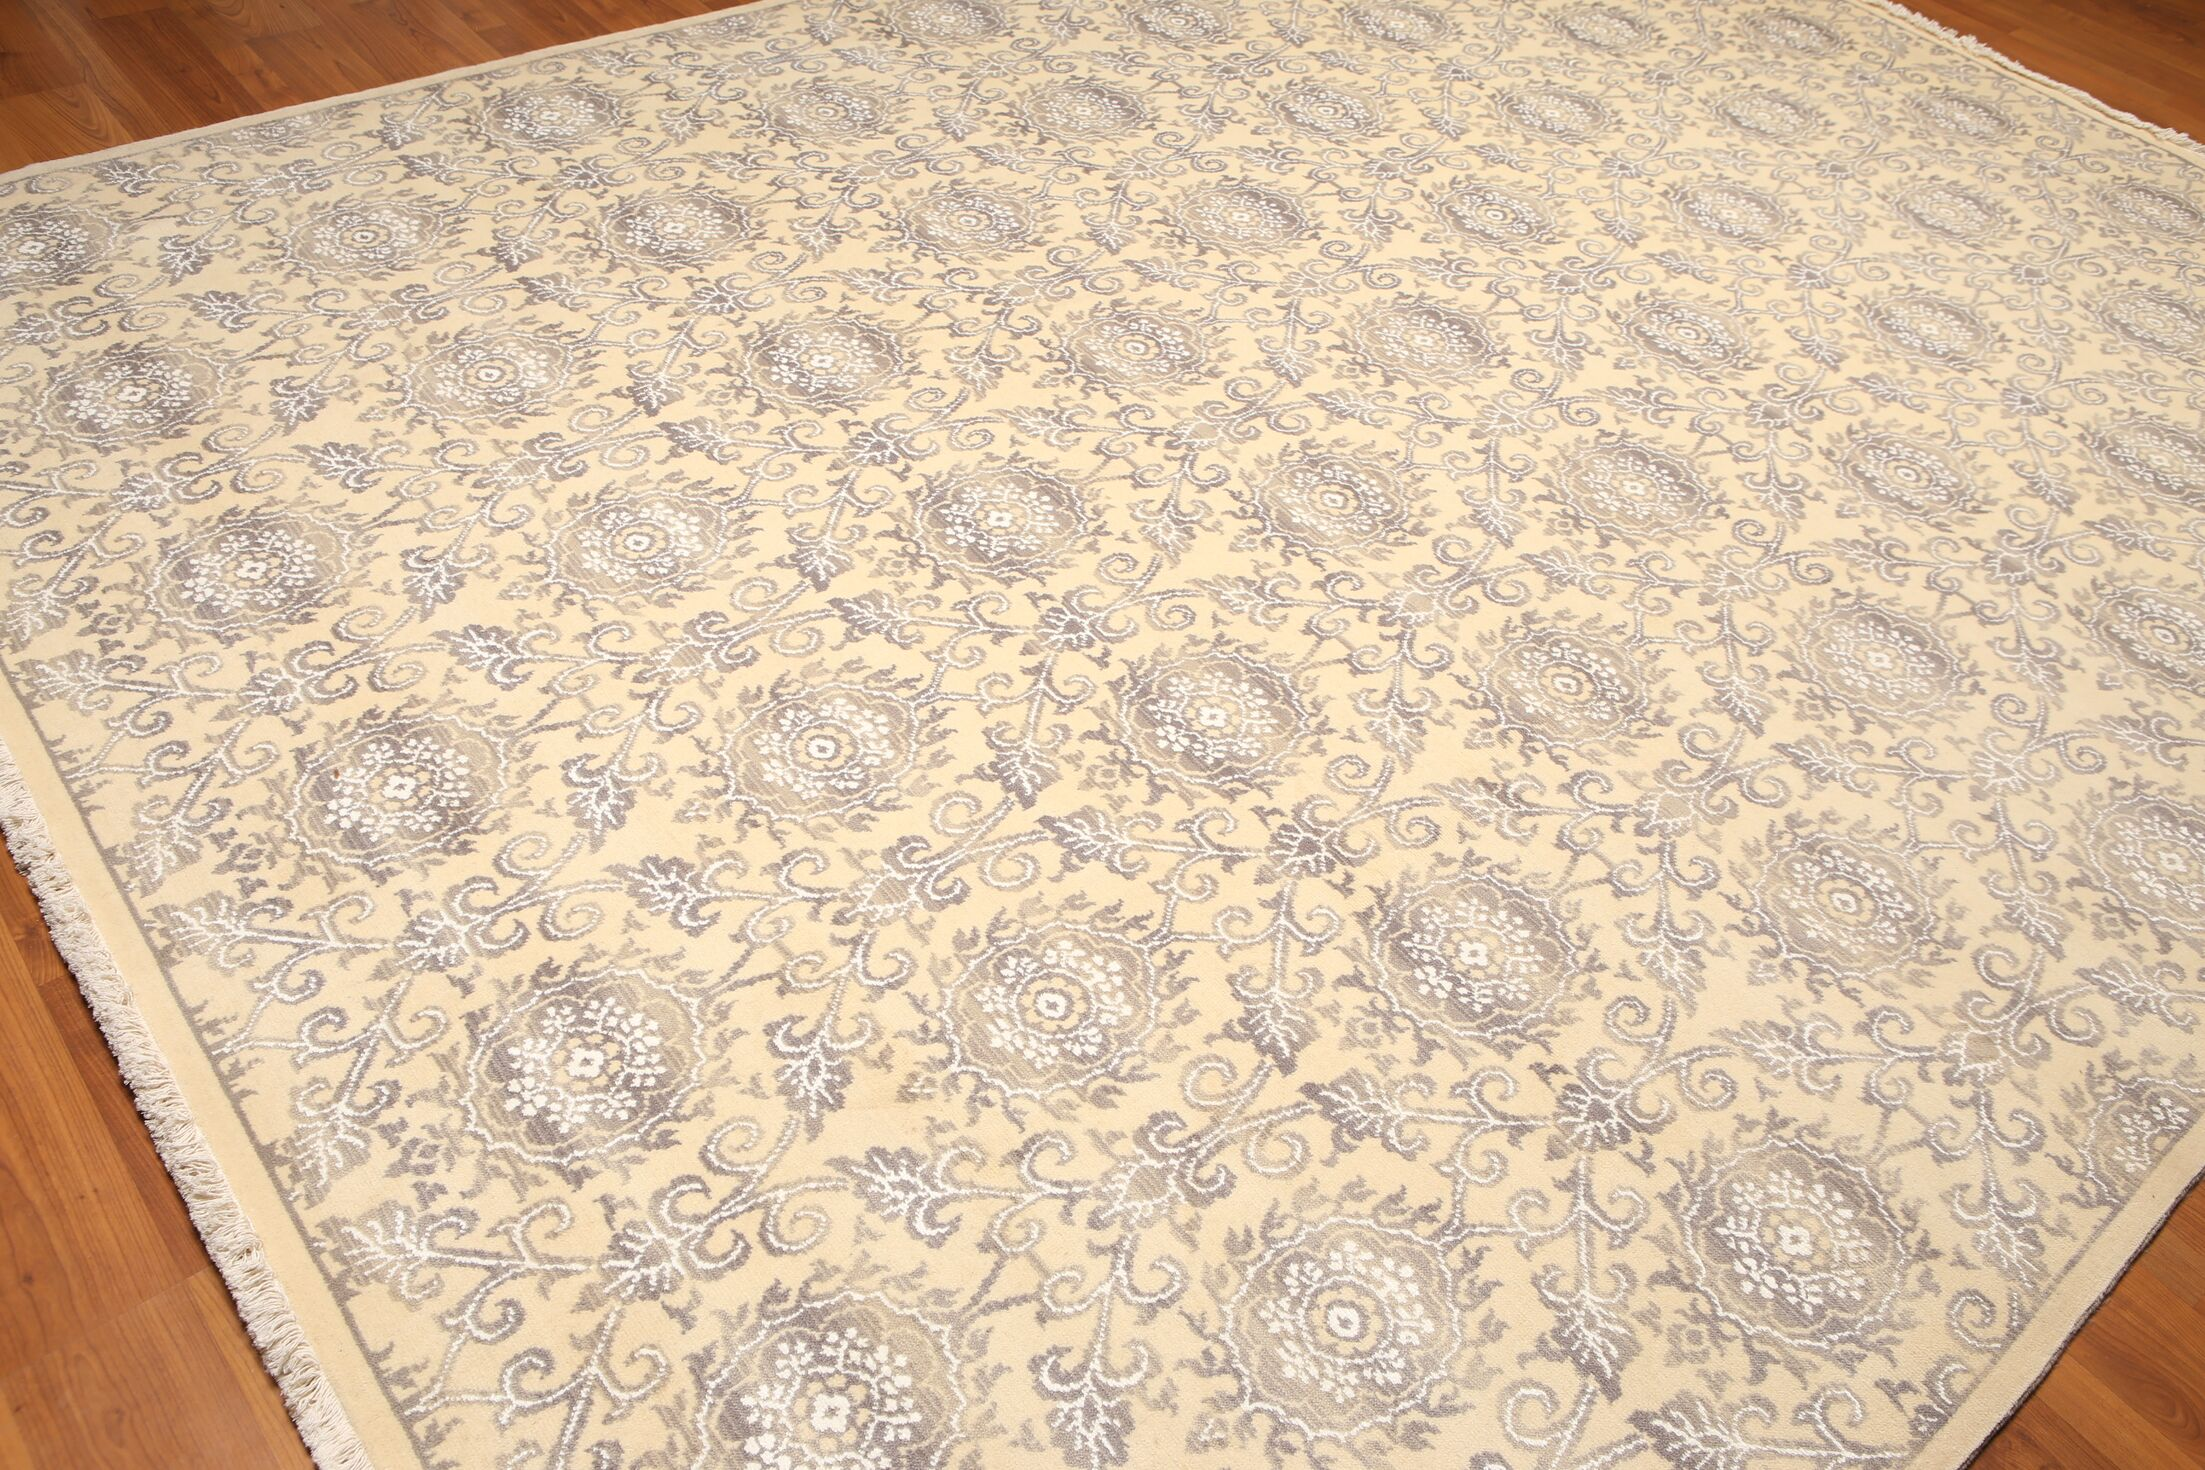 One-of-a-Kind Witherell Pile Hand-Knotted Wool Beige/Gray Area Rug